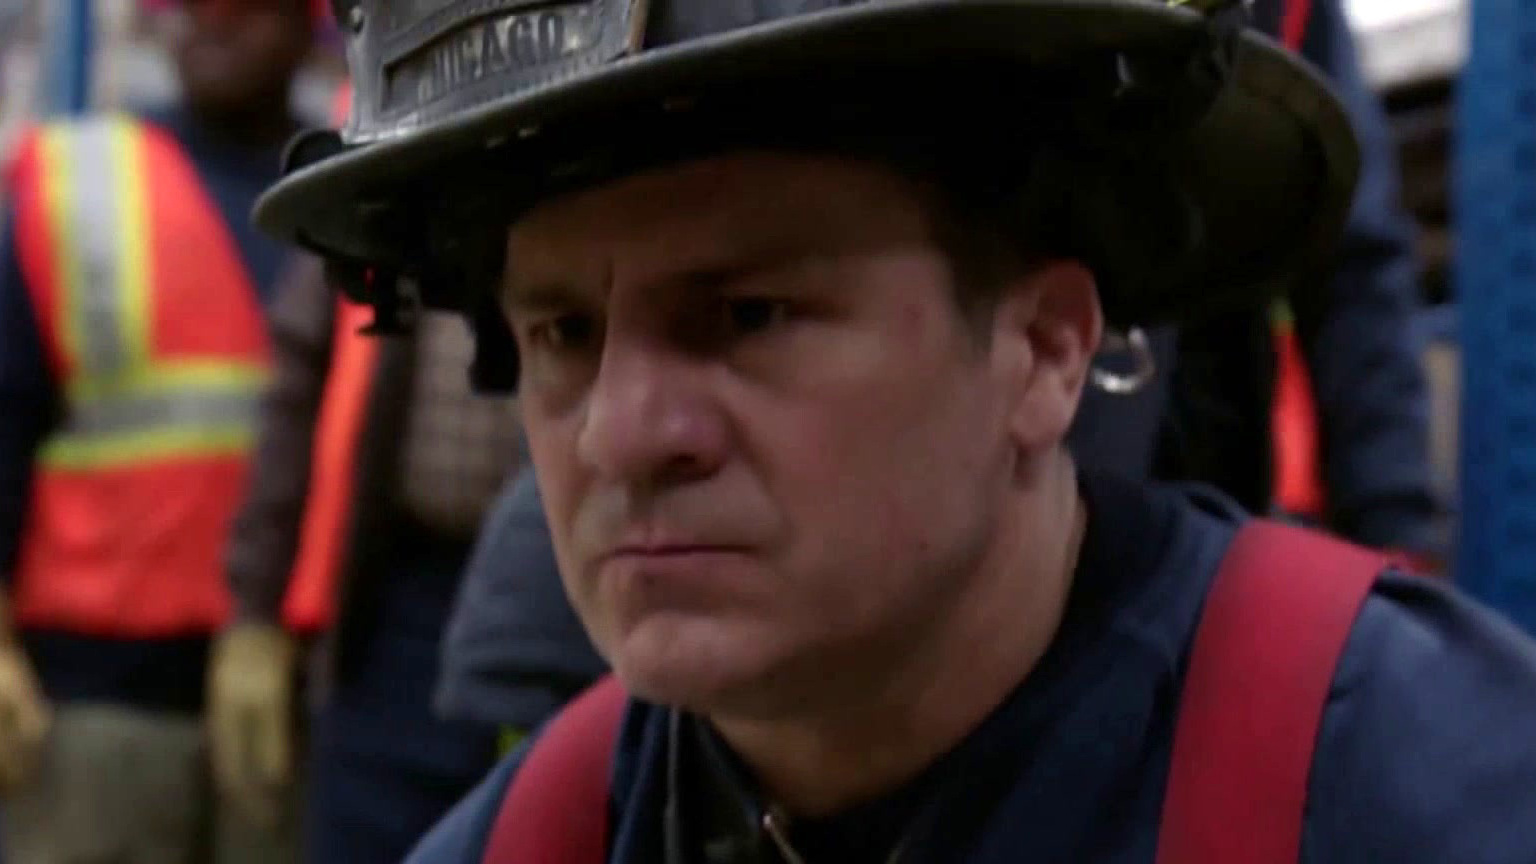 Chicago Fire: Casey, Severide And 51 Try To Save A Man Trapped Under A Forklift